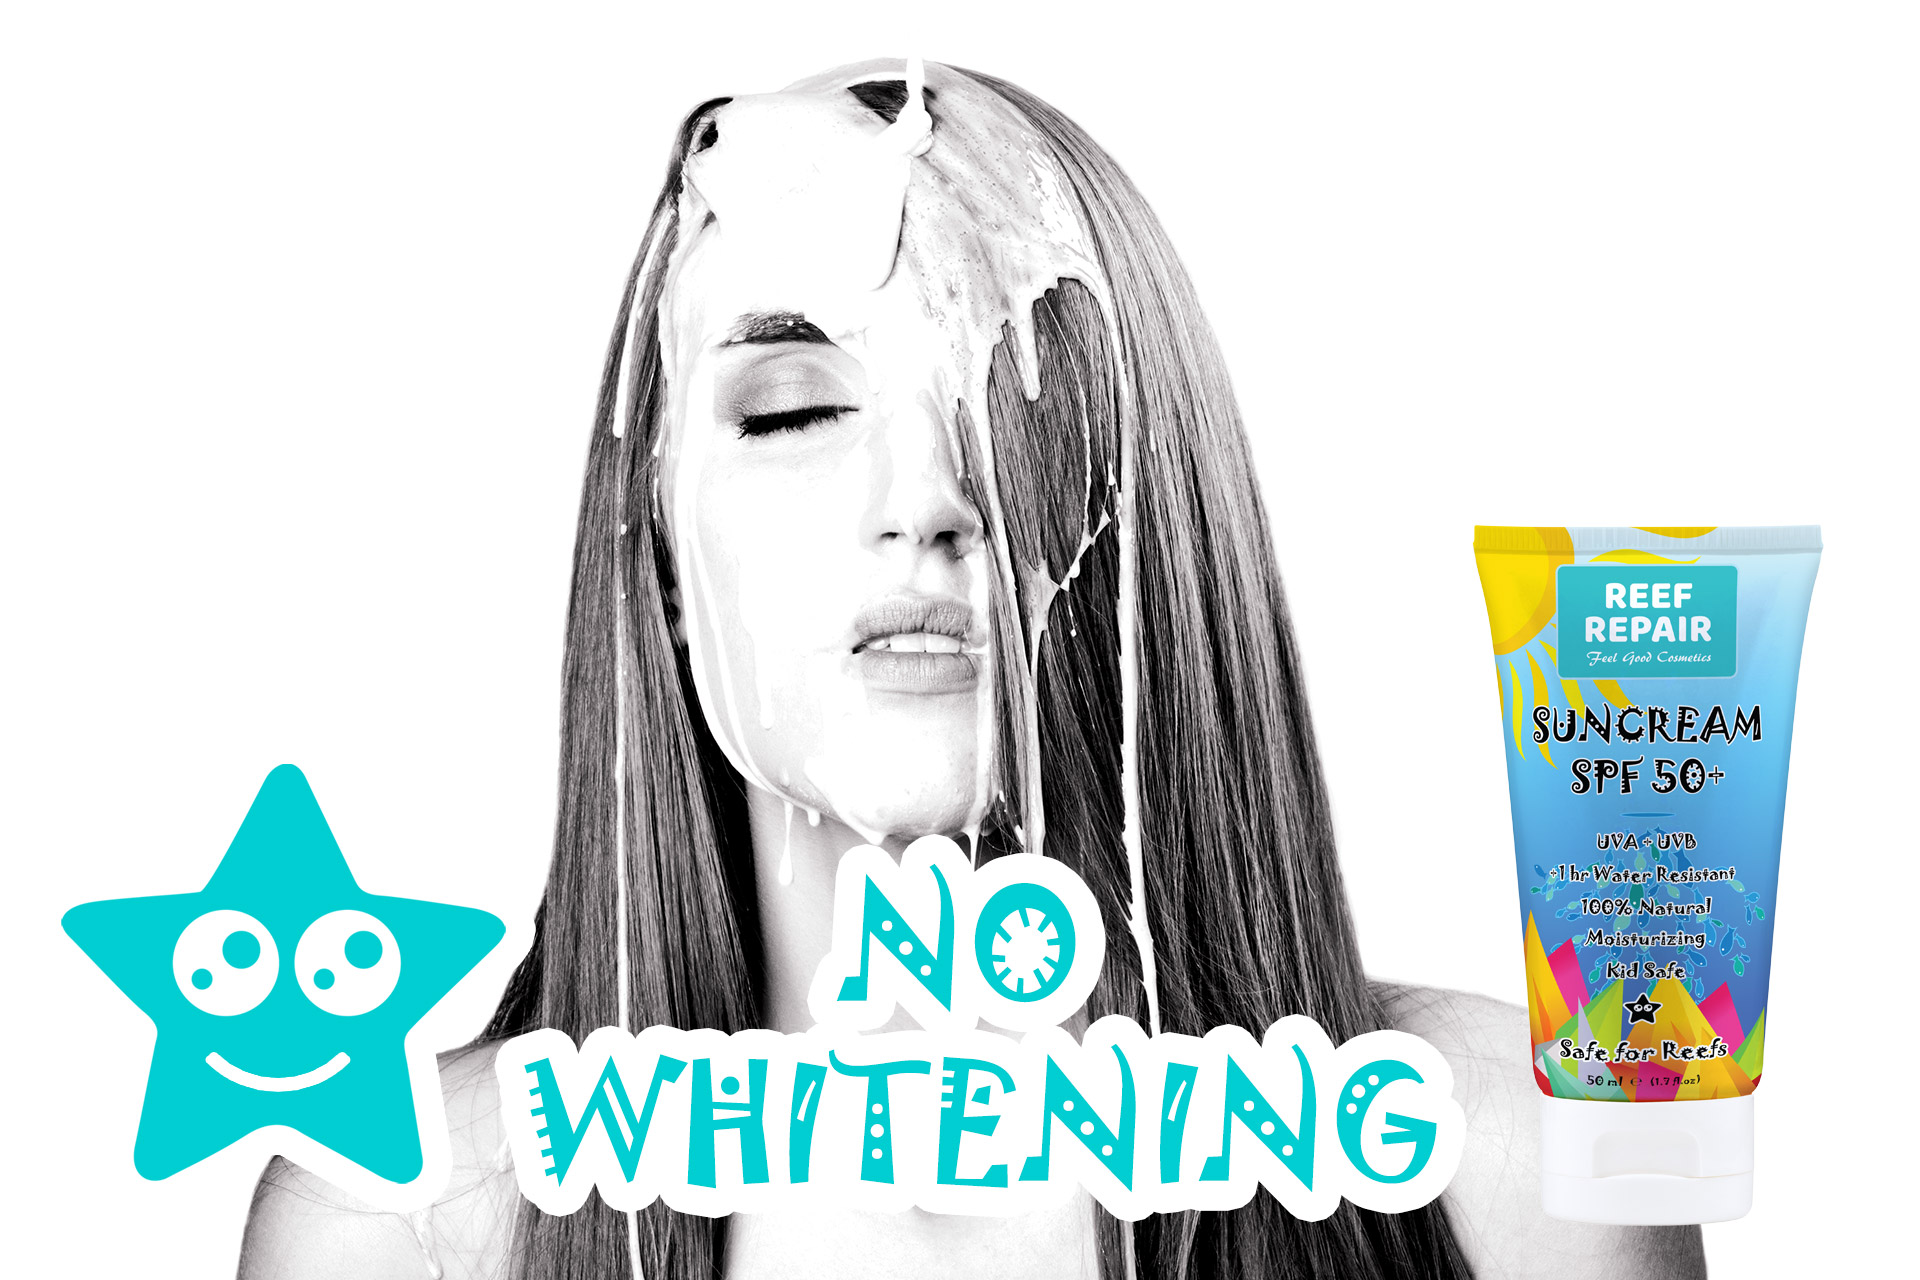 Non Whitening Reef Safe Sunscreen For All Skin Types By Reef Repair Sun Care 50ml